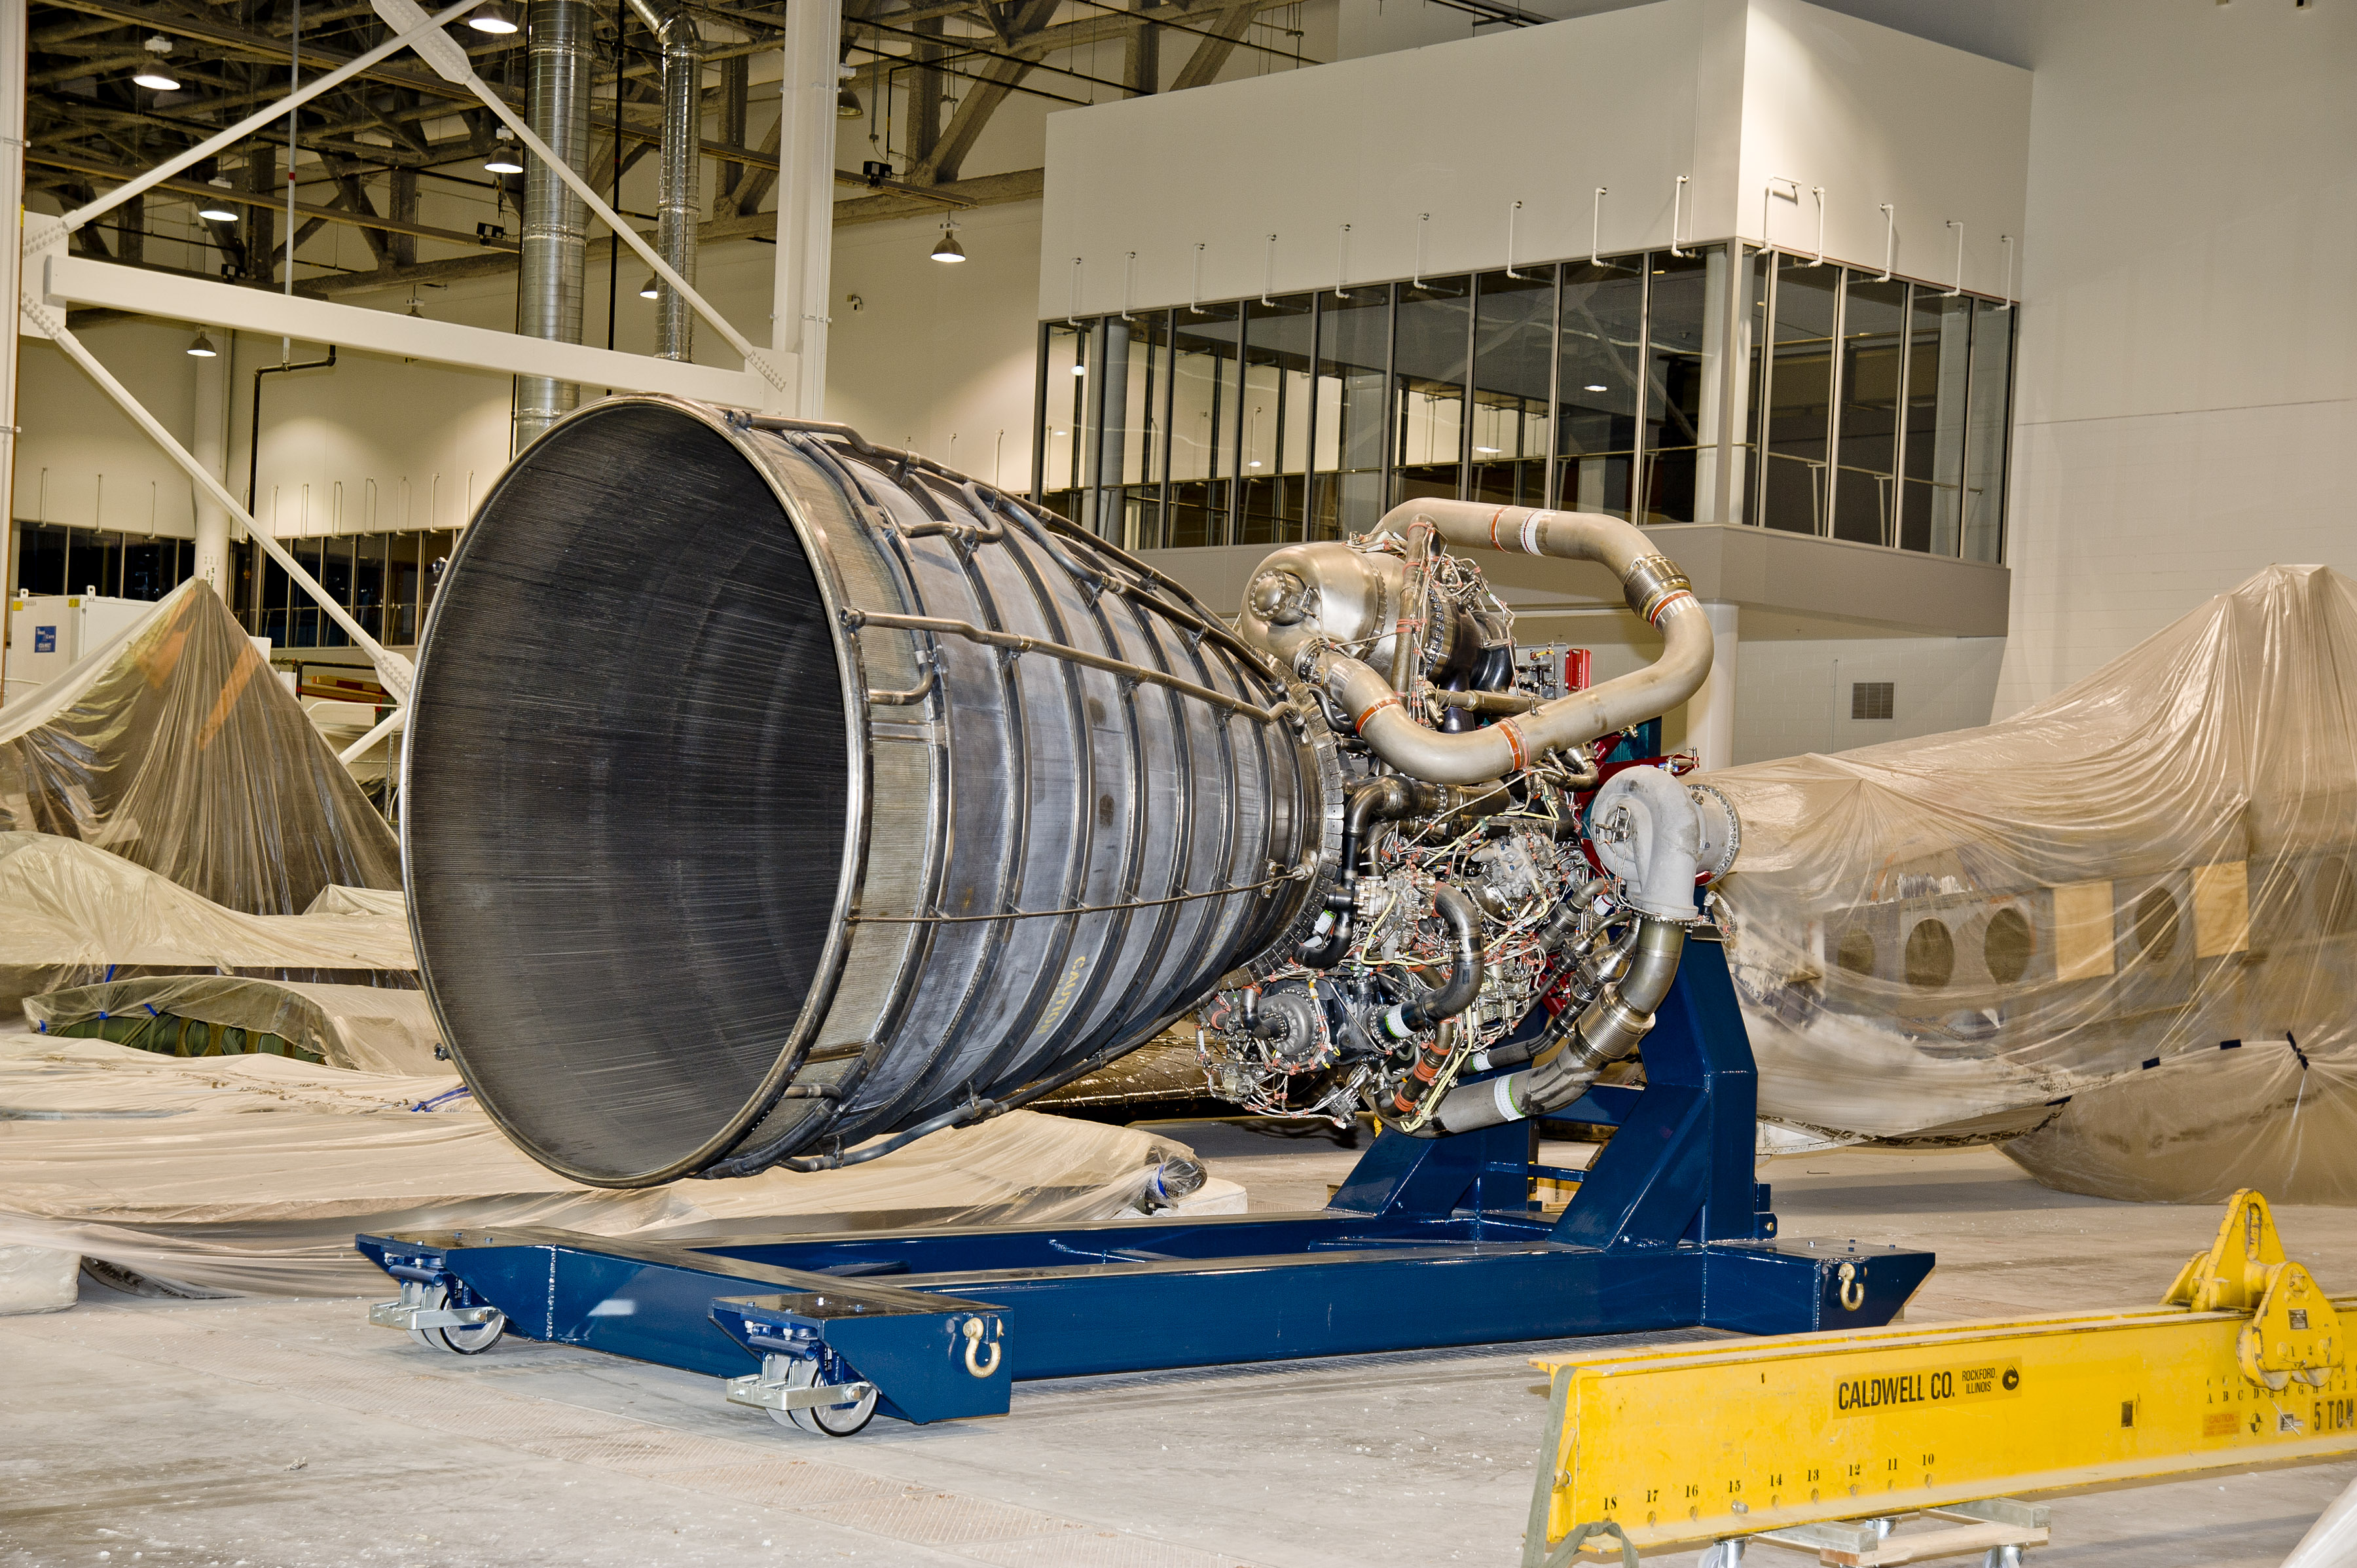 space shuttle engine - photo #11